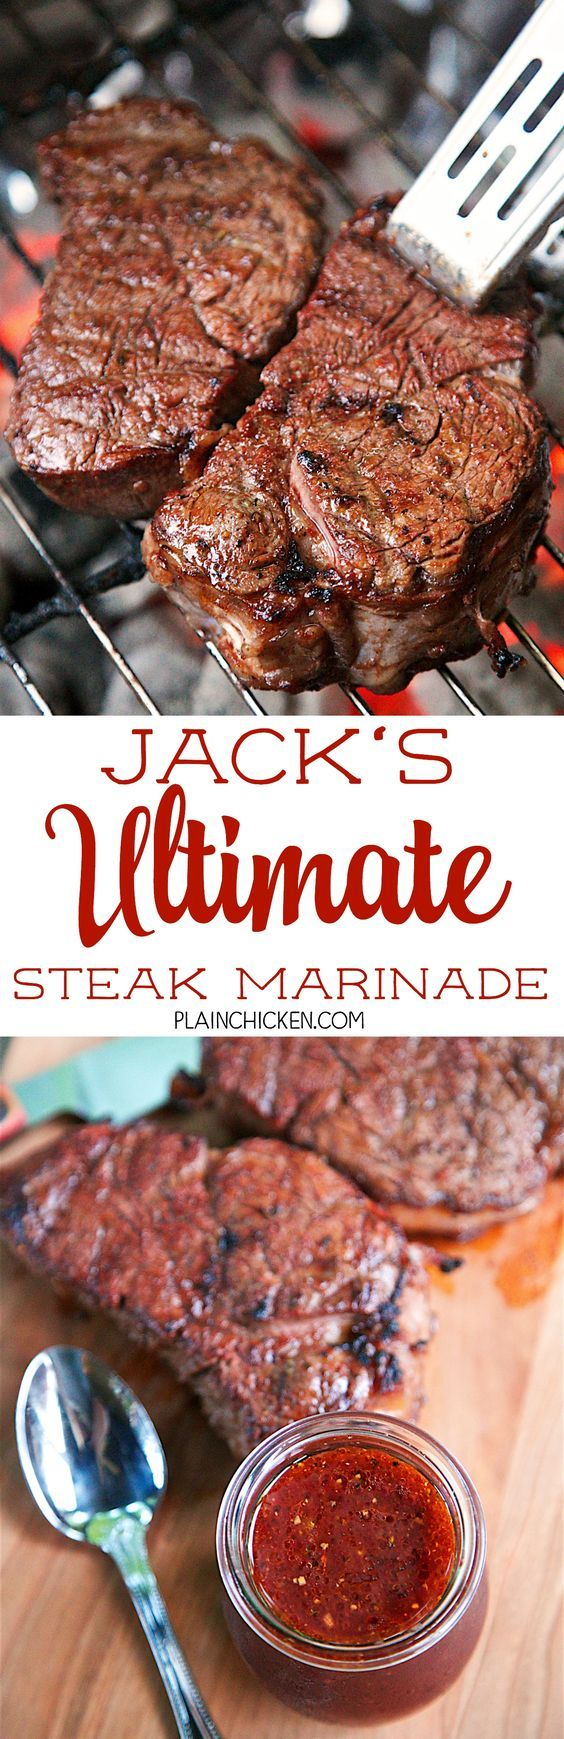 Jack's Ultimate Steak Marinade - steaks marinated in red wine, chili sauce, red wine vinegar, Worcestershire sauce, onion, garlic, salt, pepper and a bay leaf. This marinade is seriously delicious! Our new go-to marinade. TONS of great flavor!!: